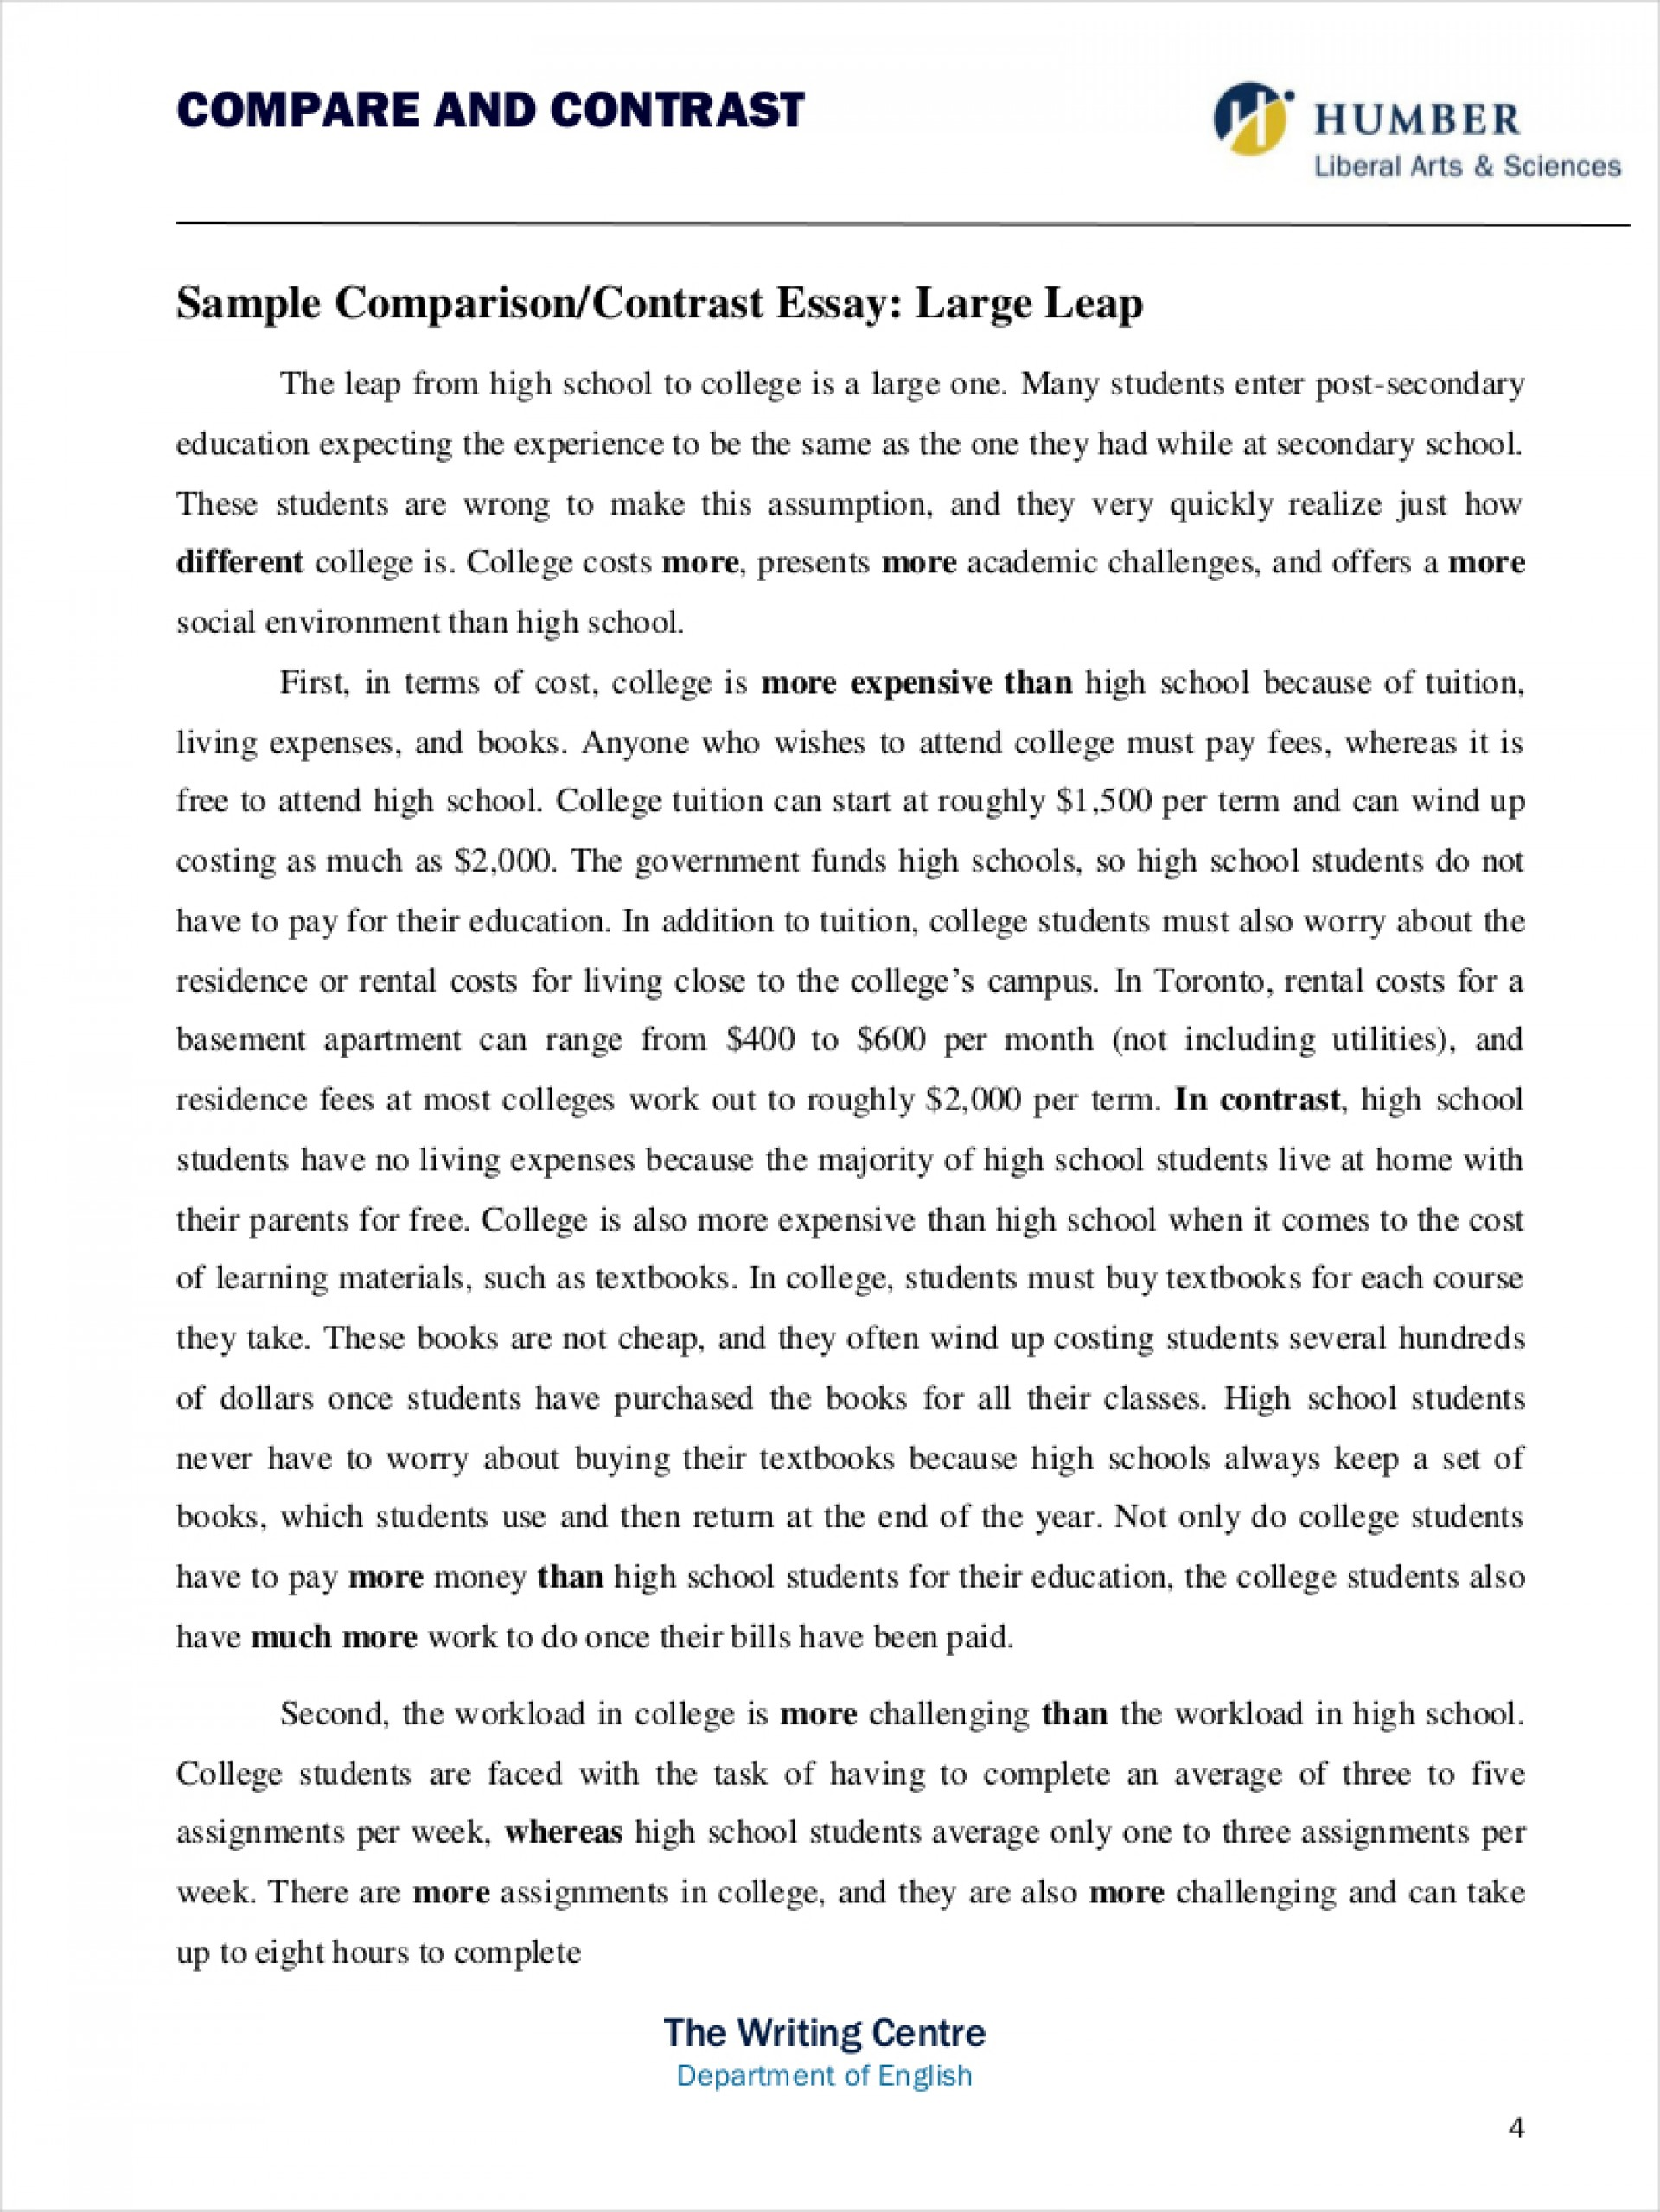 014 How To Write Compare And Contrast Essay Example Comparative Samples Free Pdf Format Download Throughout Examples Comparison Thesis Coles Thecolossus Co Within Ex Outstanding A Block Conclusion Paragraph For 1920